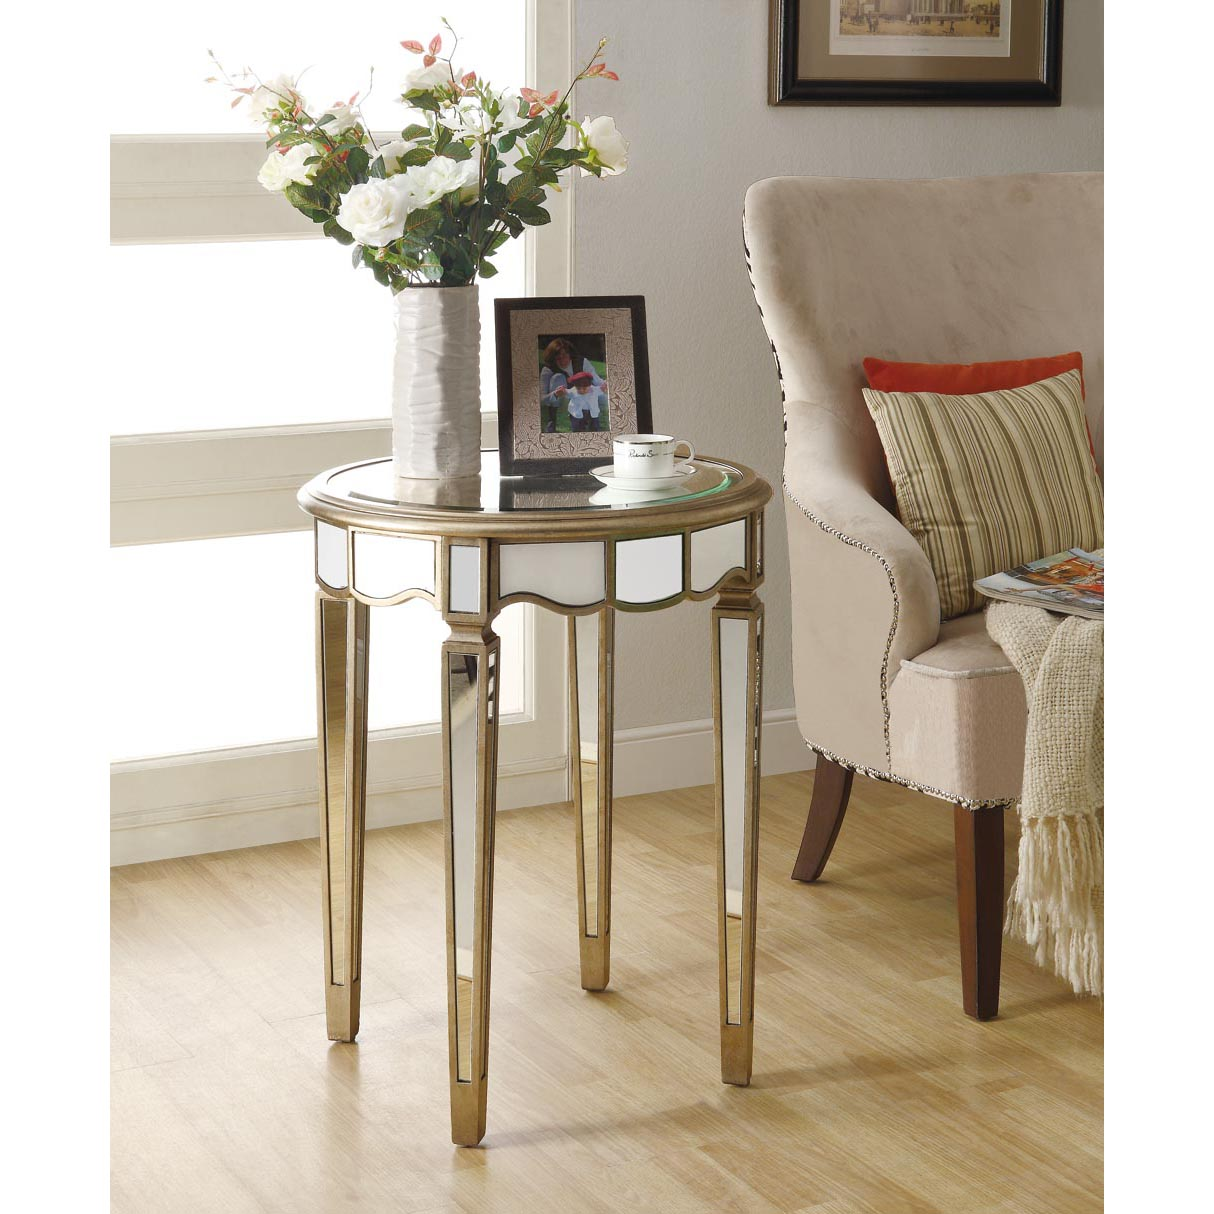 nice mirrored accent table with bobreuterstl drawer coffee under laminate paint chair side target black storage end shoe tidy babcock furniture website flowers dog cage round